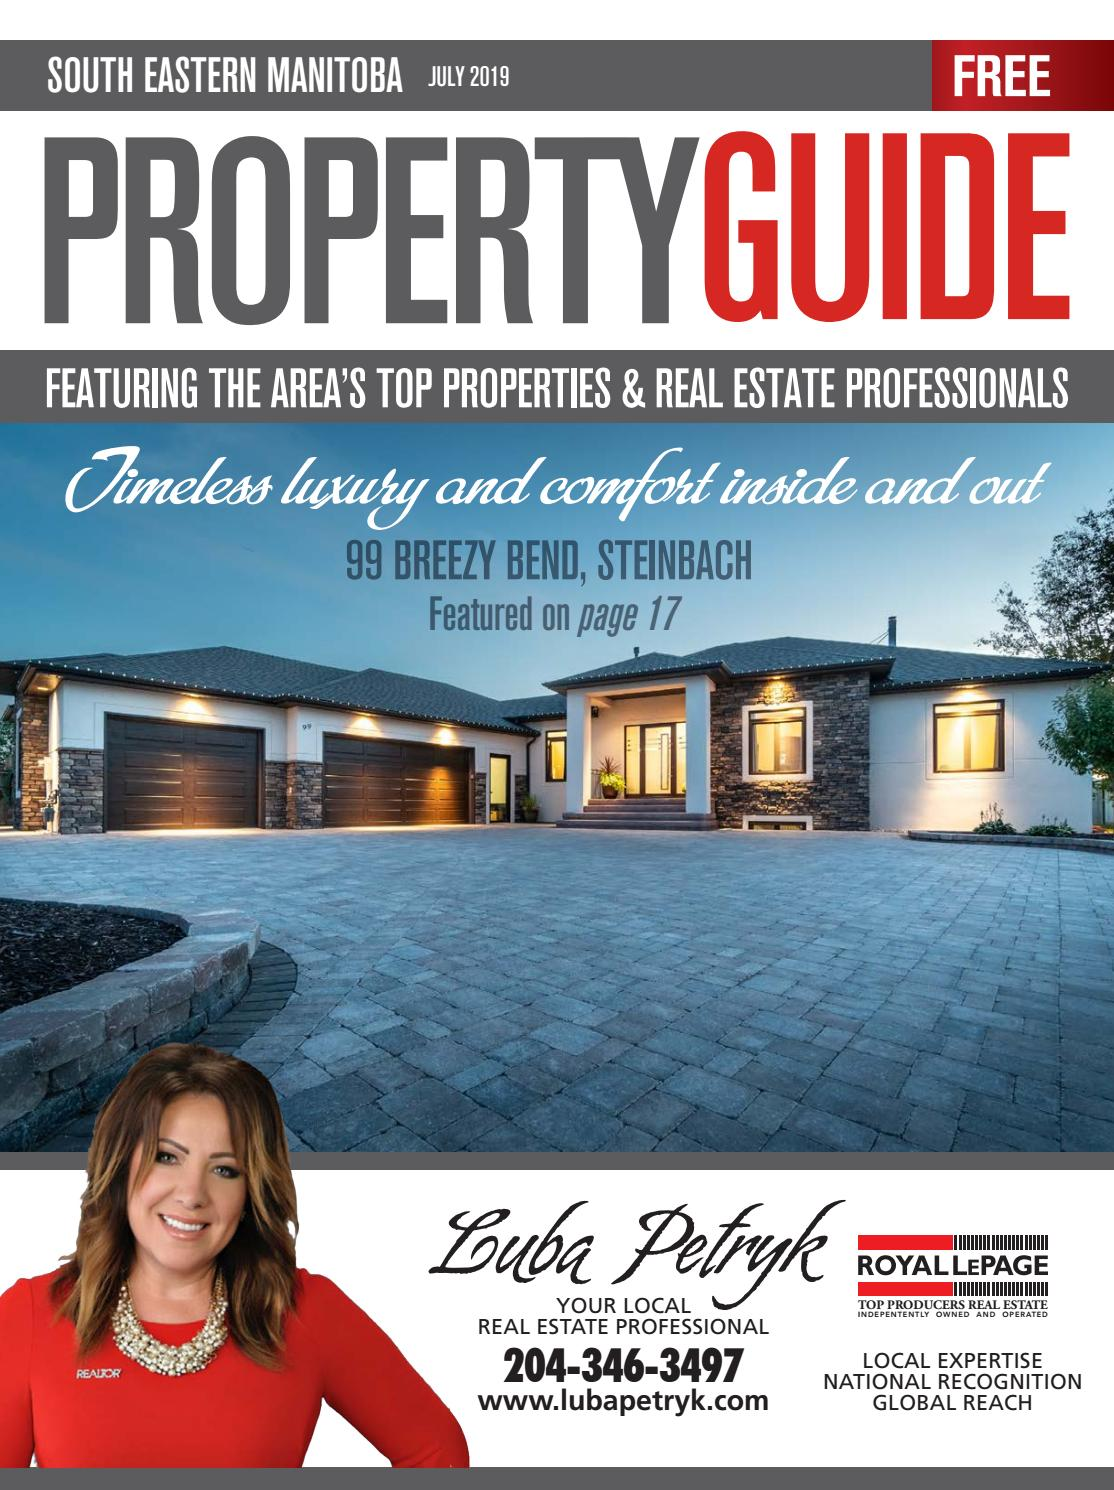 Property Guide July 2019 by Discover Ventures - issuu